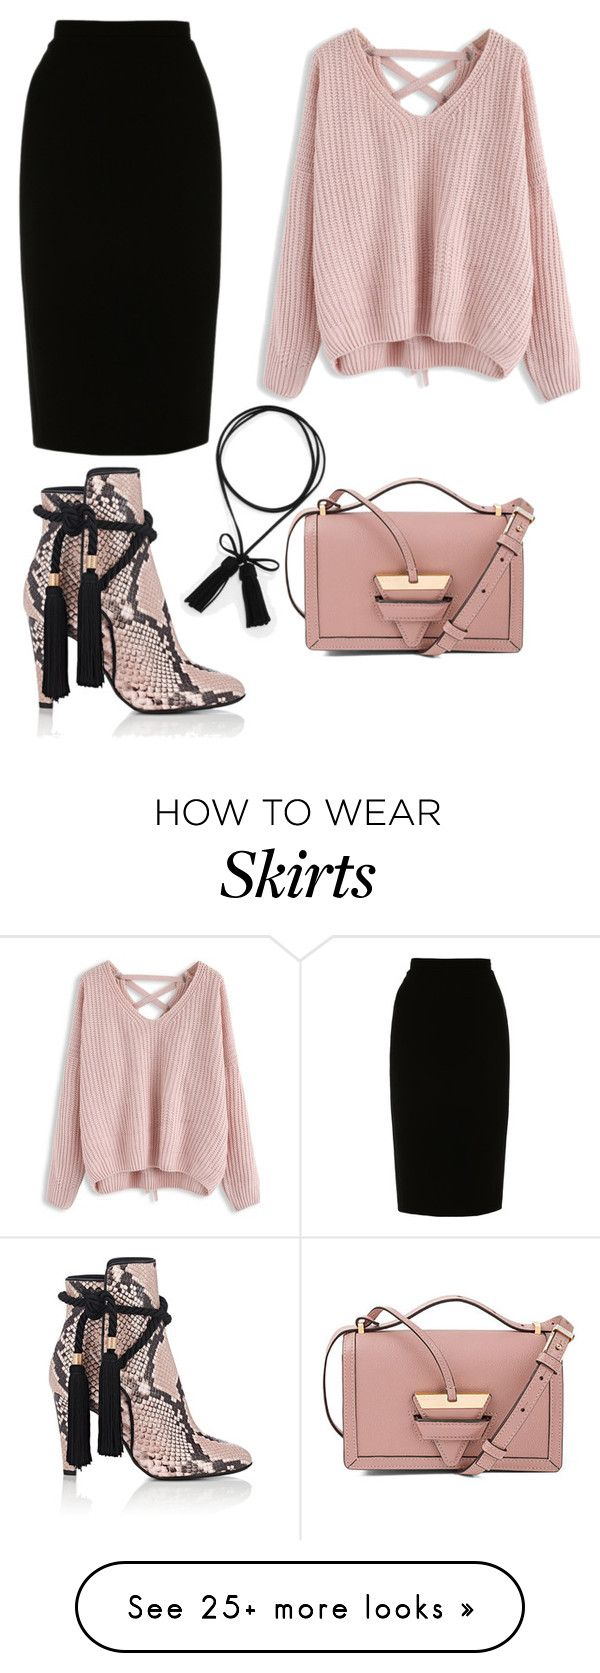 """Pencil skirt"" by amr-a on Polyvore featuring CHARLES & KEITH, Philosophy di Lorenzo Serafini, L.K.Bennett, Chicwish and Loewe"